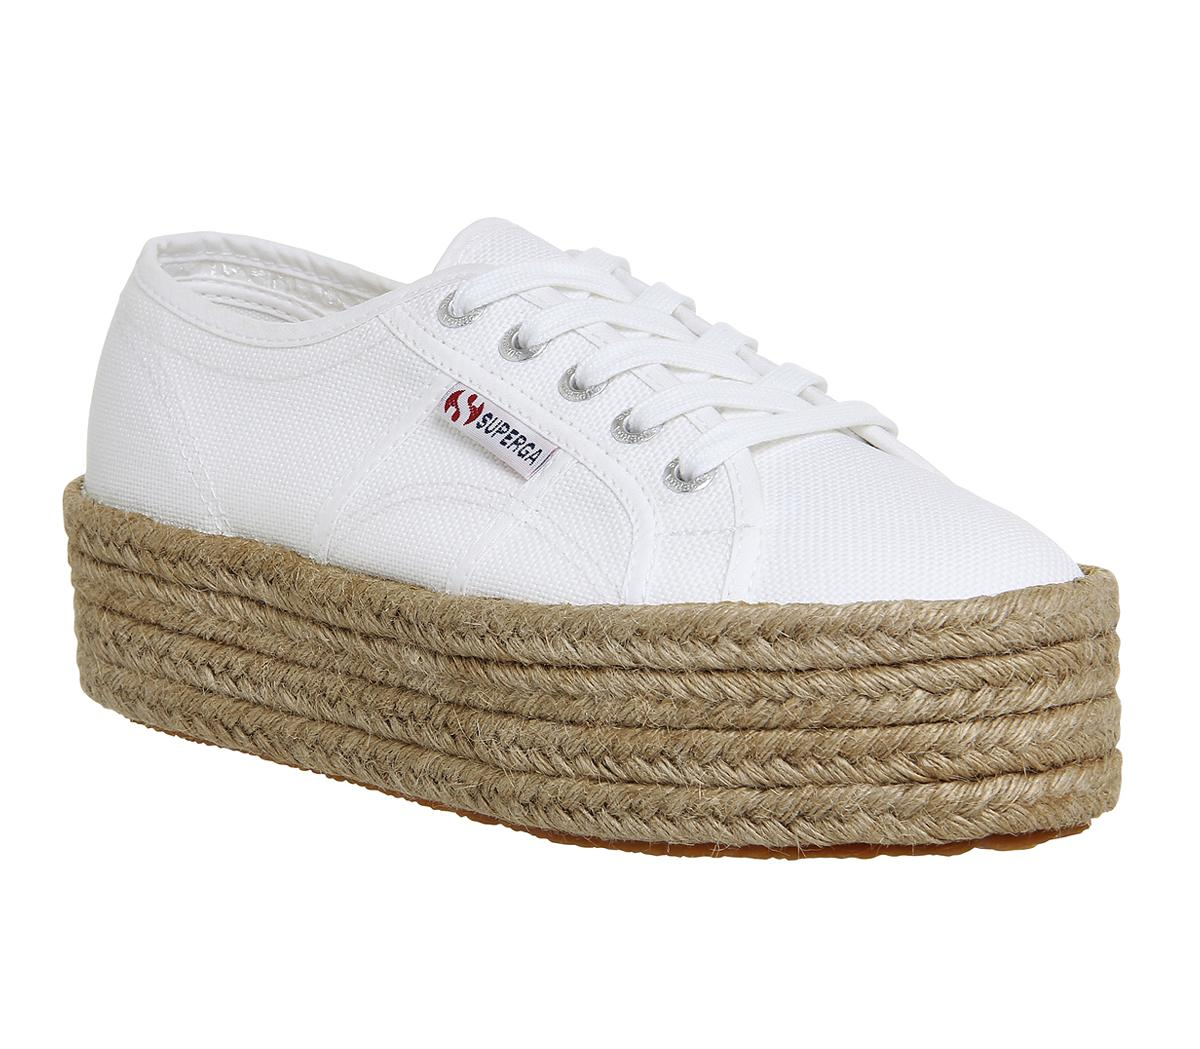 Hers Zqpgsumv Trainers Superga 2790 Espadrille White Yvf67bgy